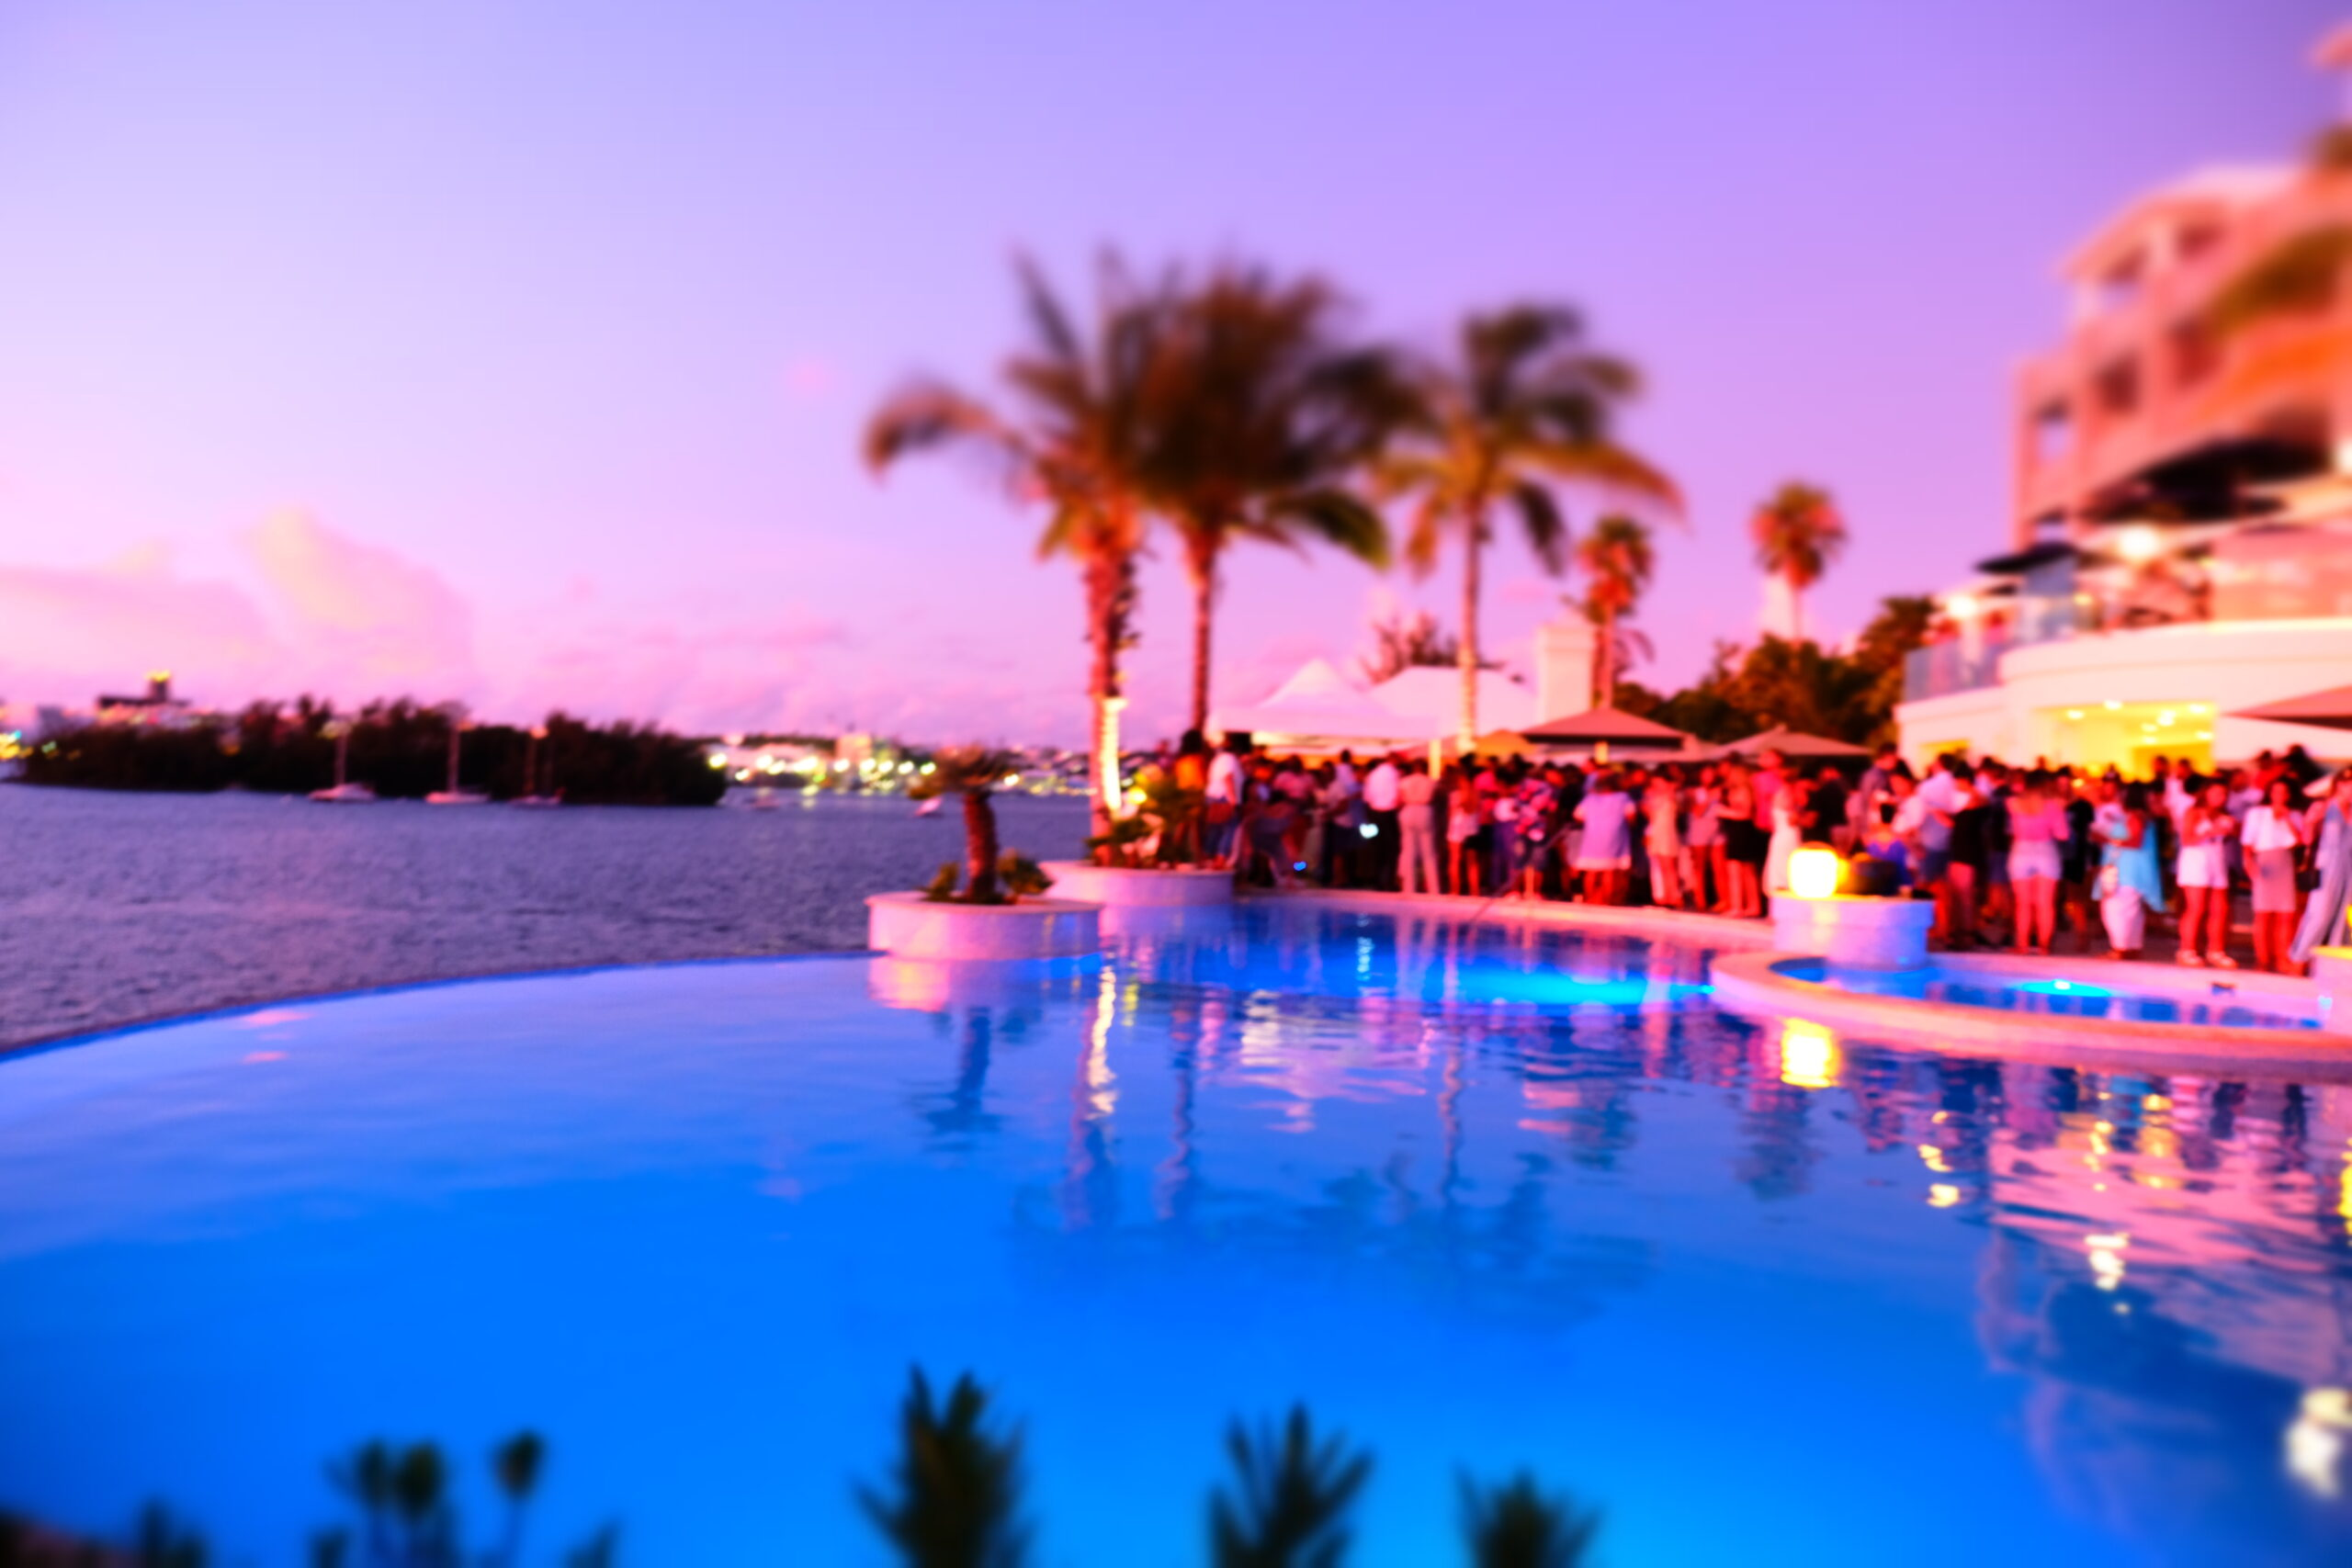 newstead resort in bermuda picture of the sunset. Palm trees and pool